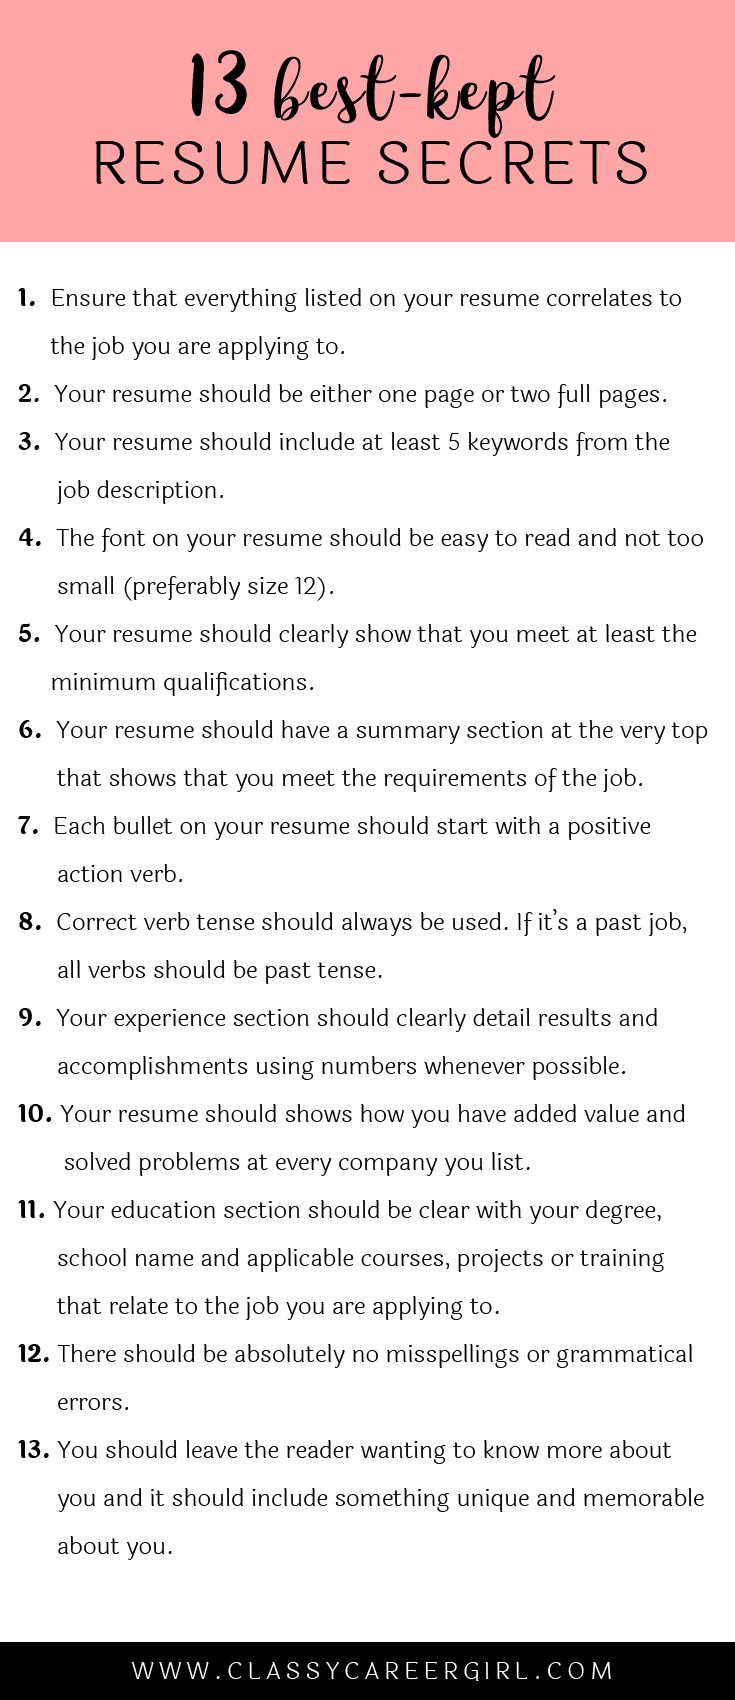 Opposenewapstandardsus  Terrific  Ideas About Resume On Pinterest  Cv Format Resume Cv And  With Foxy Some Hiring Managers Will Toss Your Resume Out If You Dont Know These  With Cool Sample Restaurant Manager Resume Also Medical Field Resume In Addition Resume For A Waitress And Resume Warehouse As Well As Staff Accountant Resume Sample Additionally Electrical Apprentice Resume From Pinterestcom With Opposenewapstandardsus  Foxy  Ideas About Resume On Pinterest  Cv Format Resume Cv And  With Cool Some Hiring Managers Will Toss Your Resume Out If You Dont Know These  And Terrific Sample Restaurant Manager Resume Also Medical Field Resume In Addition Resume For A Waitress From Pinterestcom